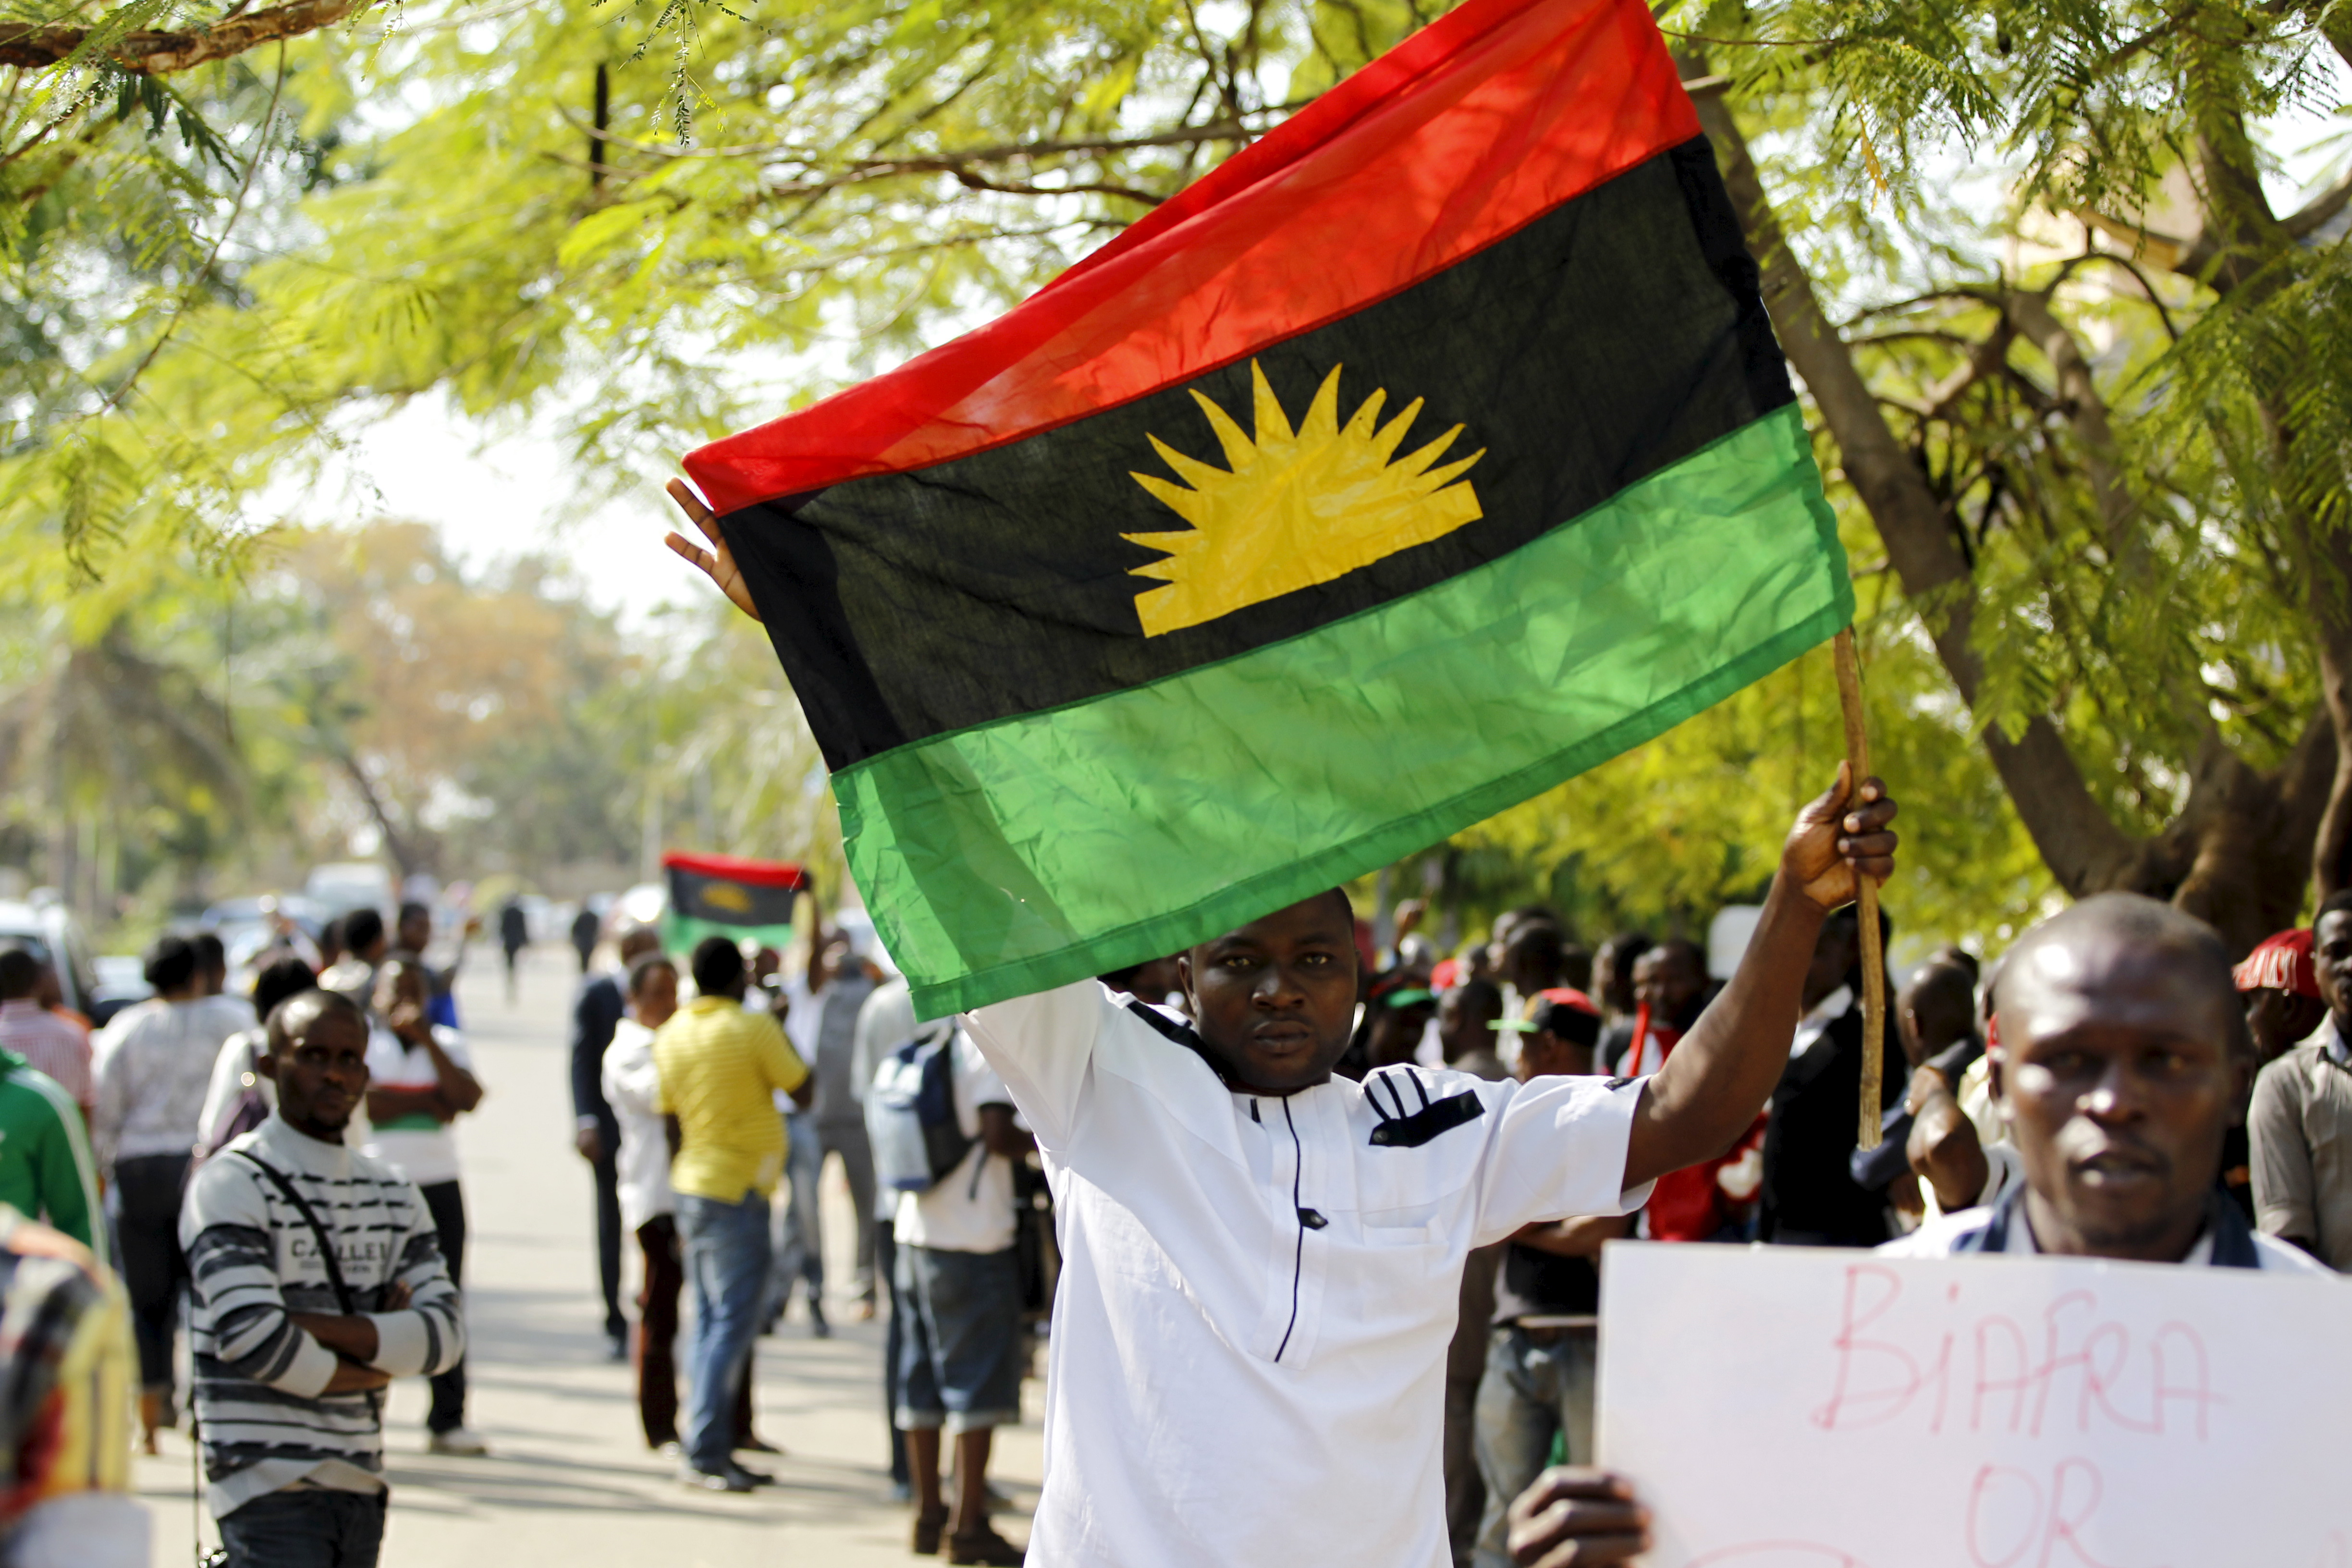 A supporter of Indigenous People of Biafra (IPOB) leader Nnamdi Kanu holds a Biafra flag during a rally in support of Kanu, who is expected to appear at a magistrate court in Abuja